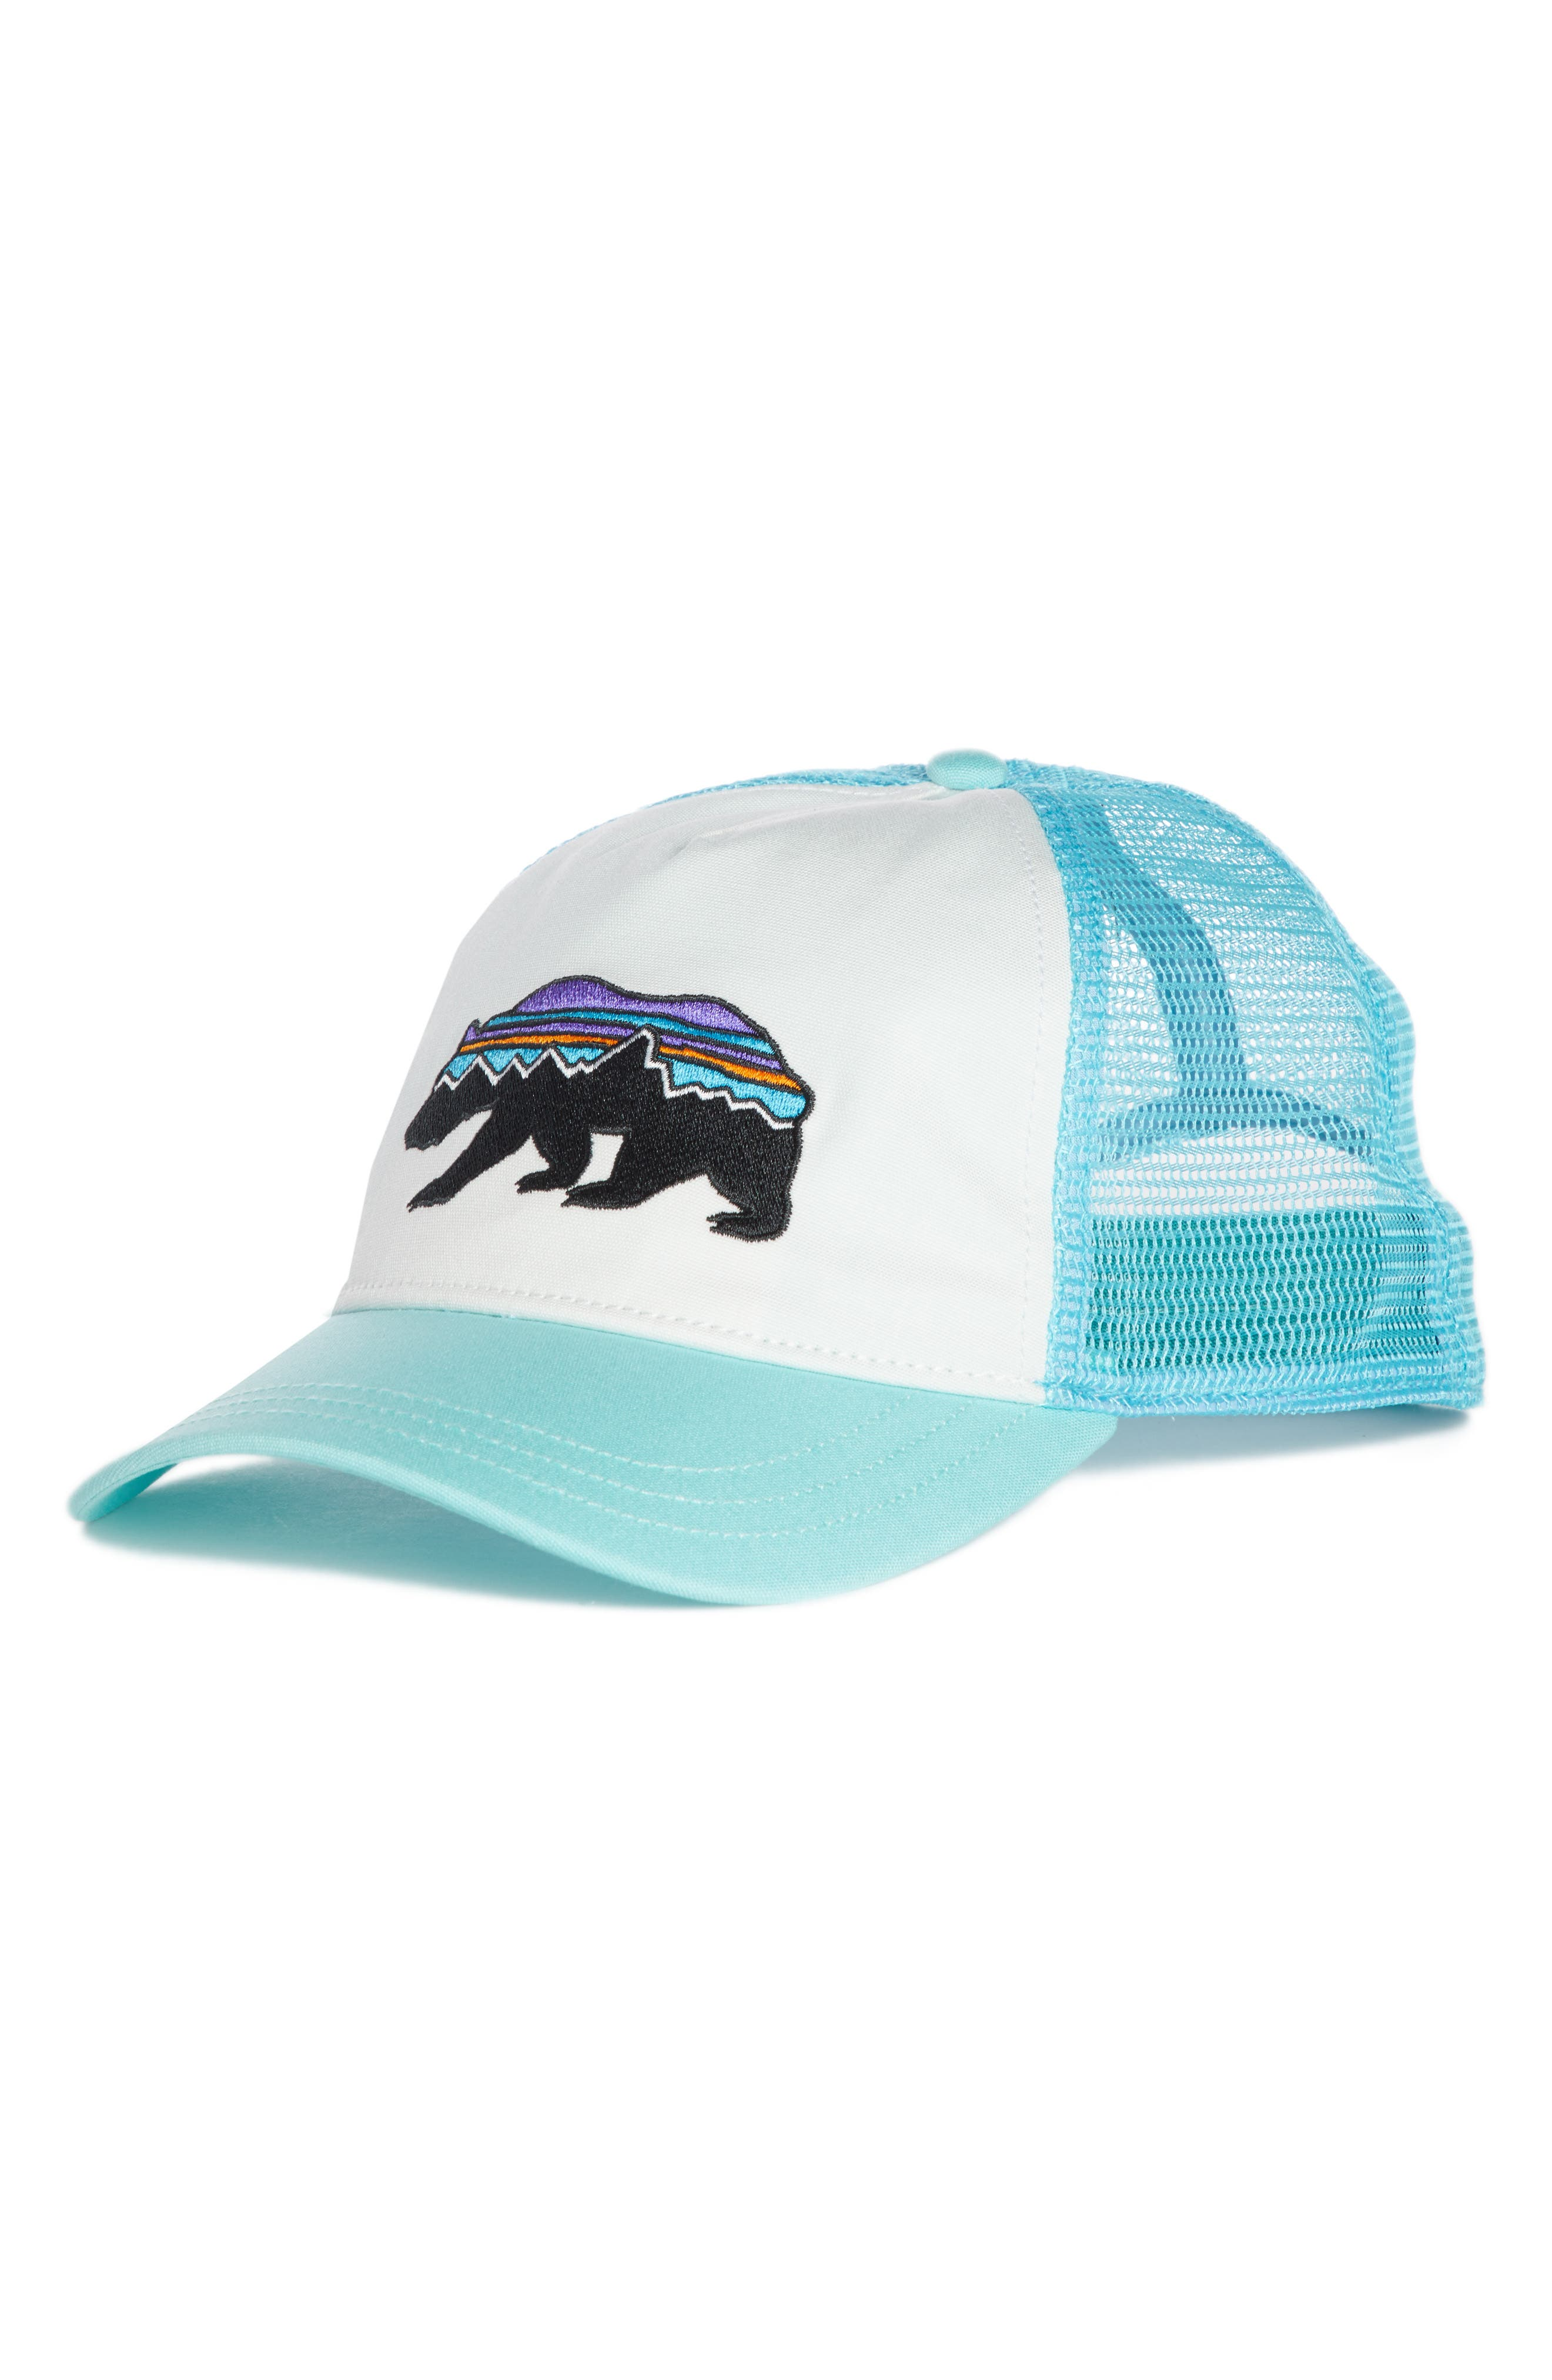 Fitz Roy Bear Trucker Hat,                             Main thumbnail 1, color,                             101